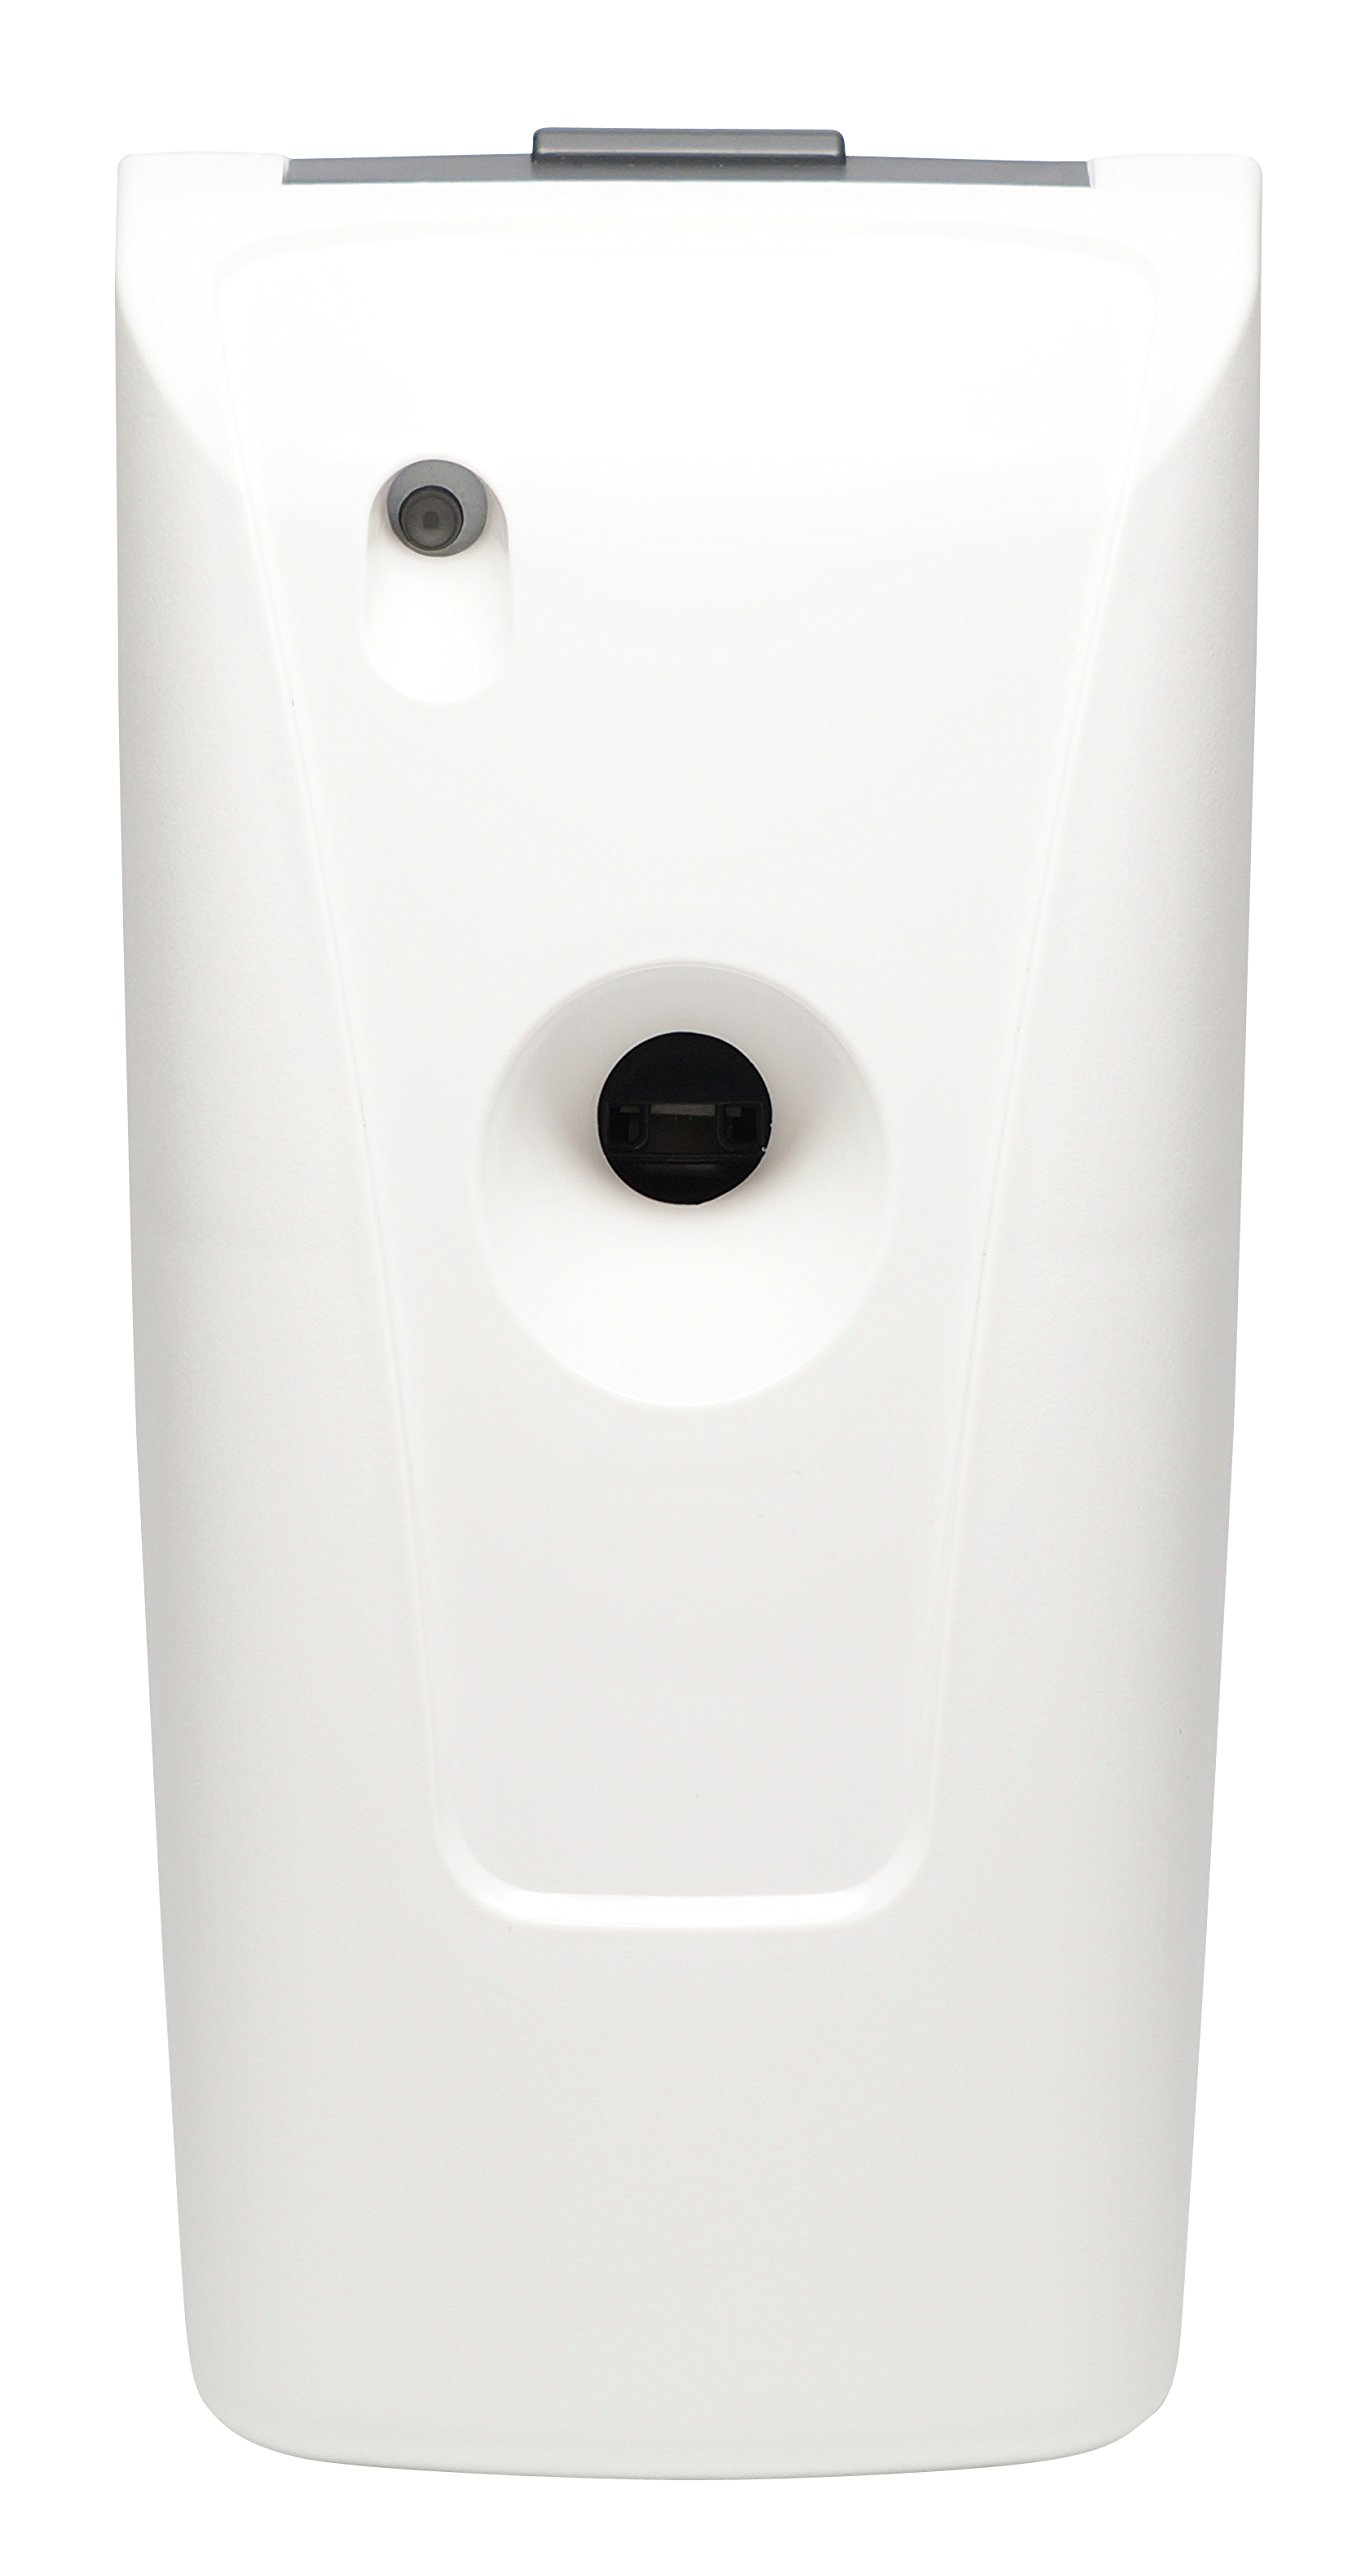 Big D 271 Fully-Programmable Breeze Dispenser, Automatic Air Freshener with Piezo Technology - Ideal for restrooms, Offices, Schools, Restaurants, Hotels, Stores